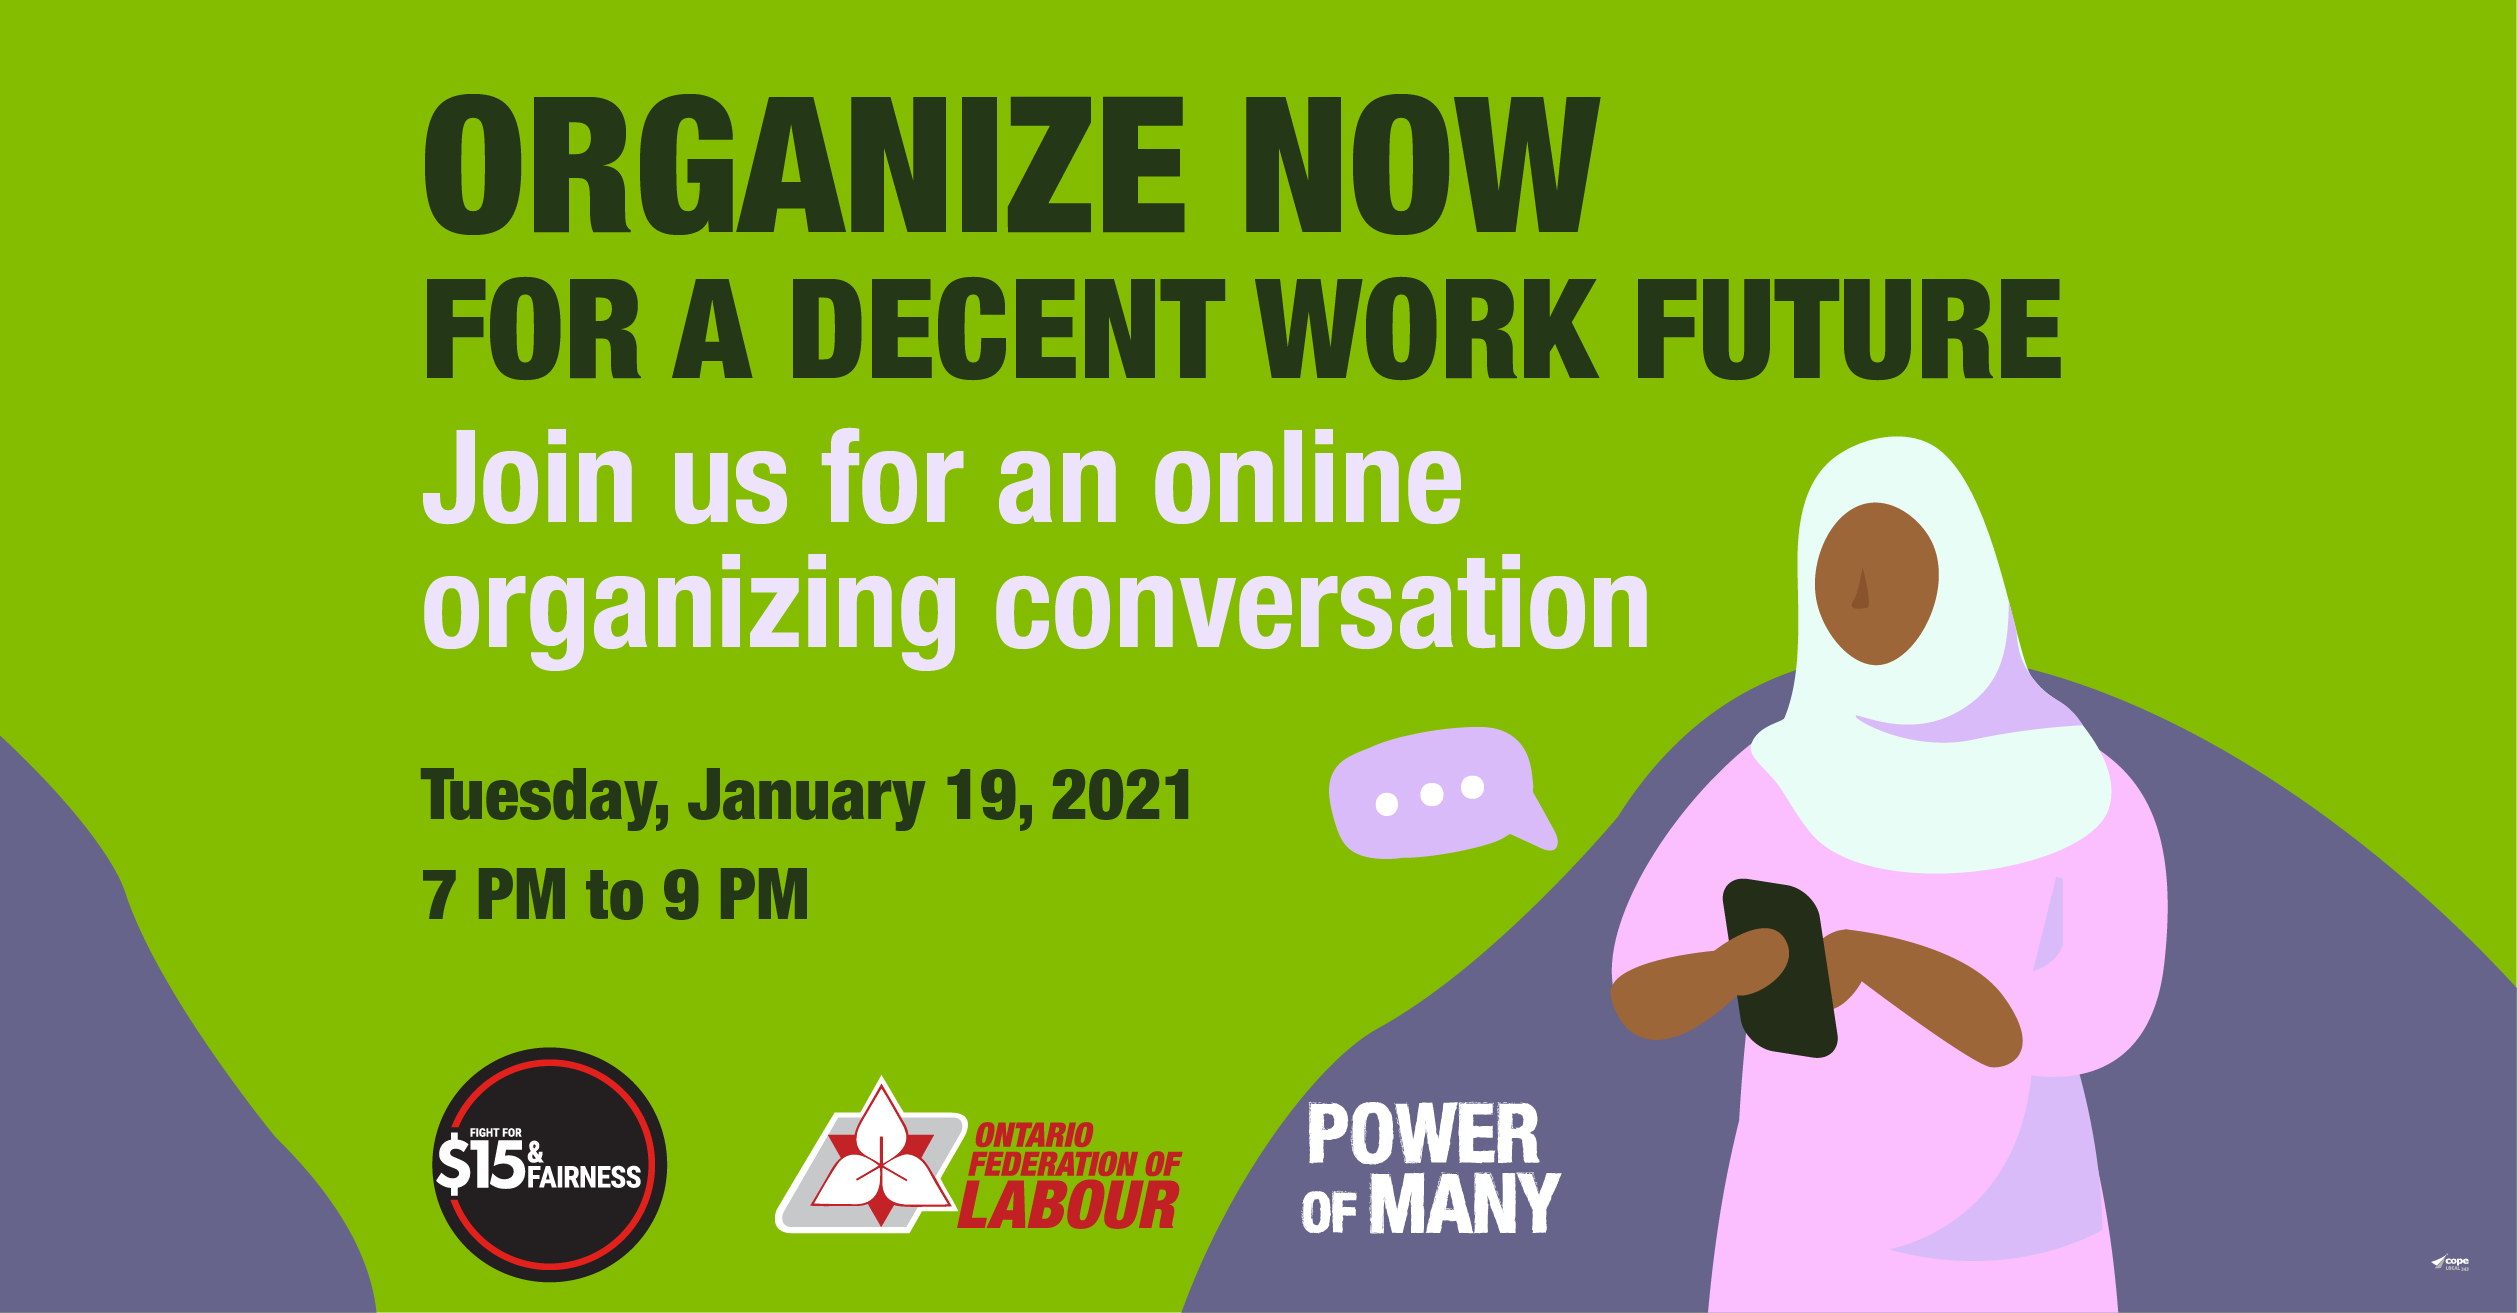 Decent Work Organizing Meeting